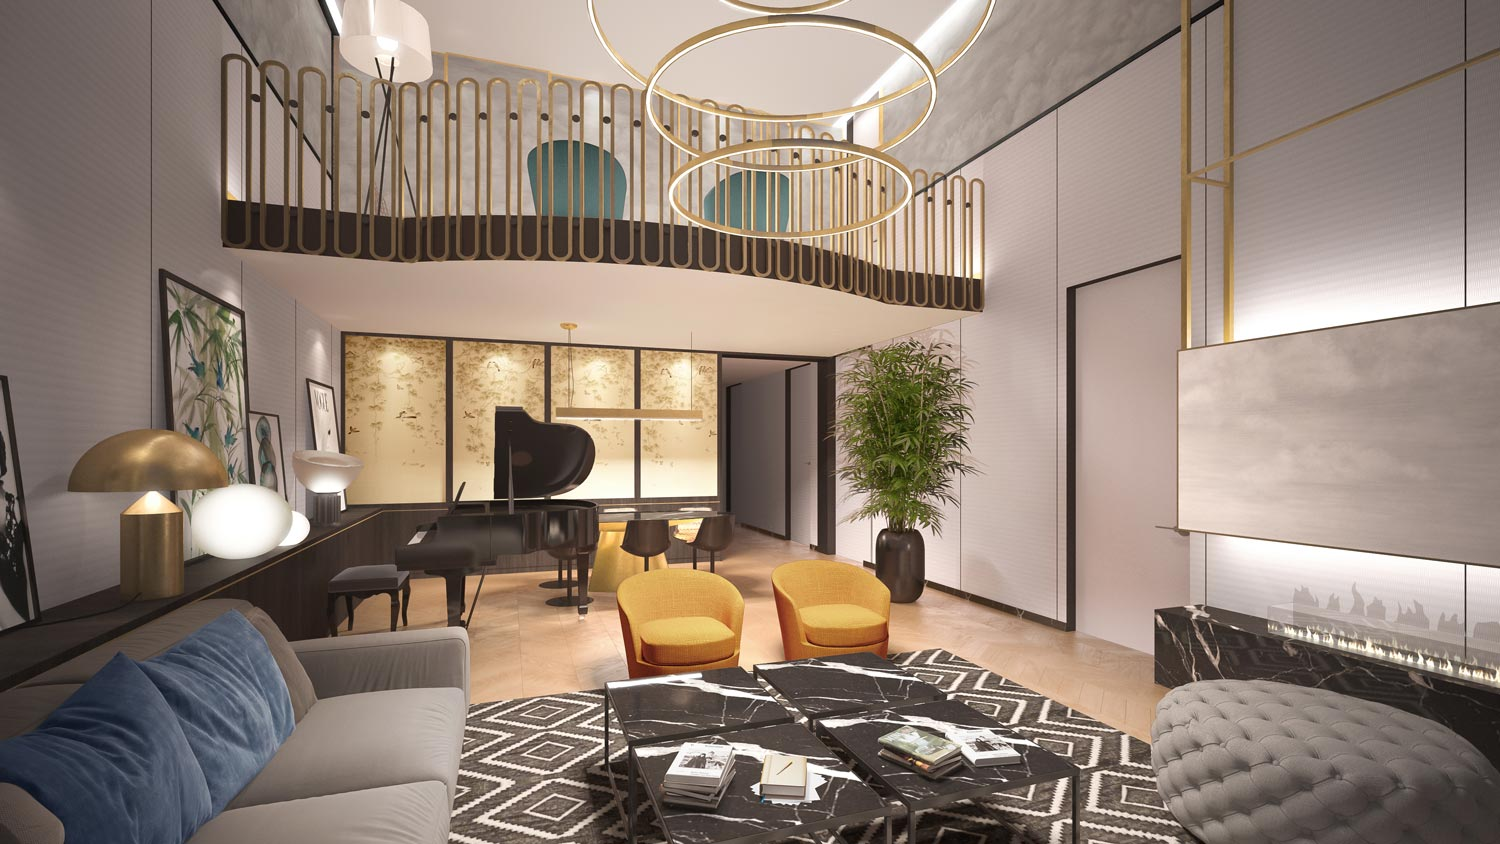 Modern Luxury Living Room Interior Design Beijing A Designer At Heart Interior Design Consultant Specialised In Serviced Accommodation